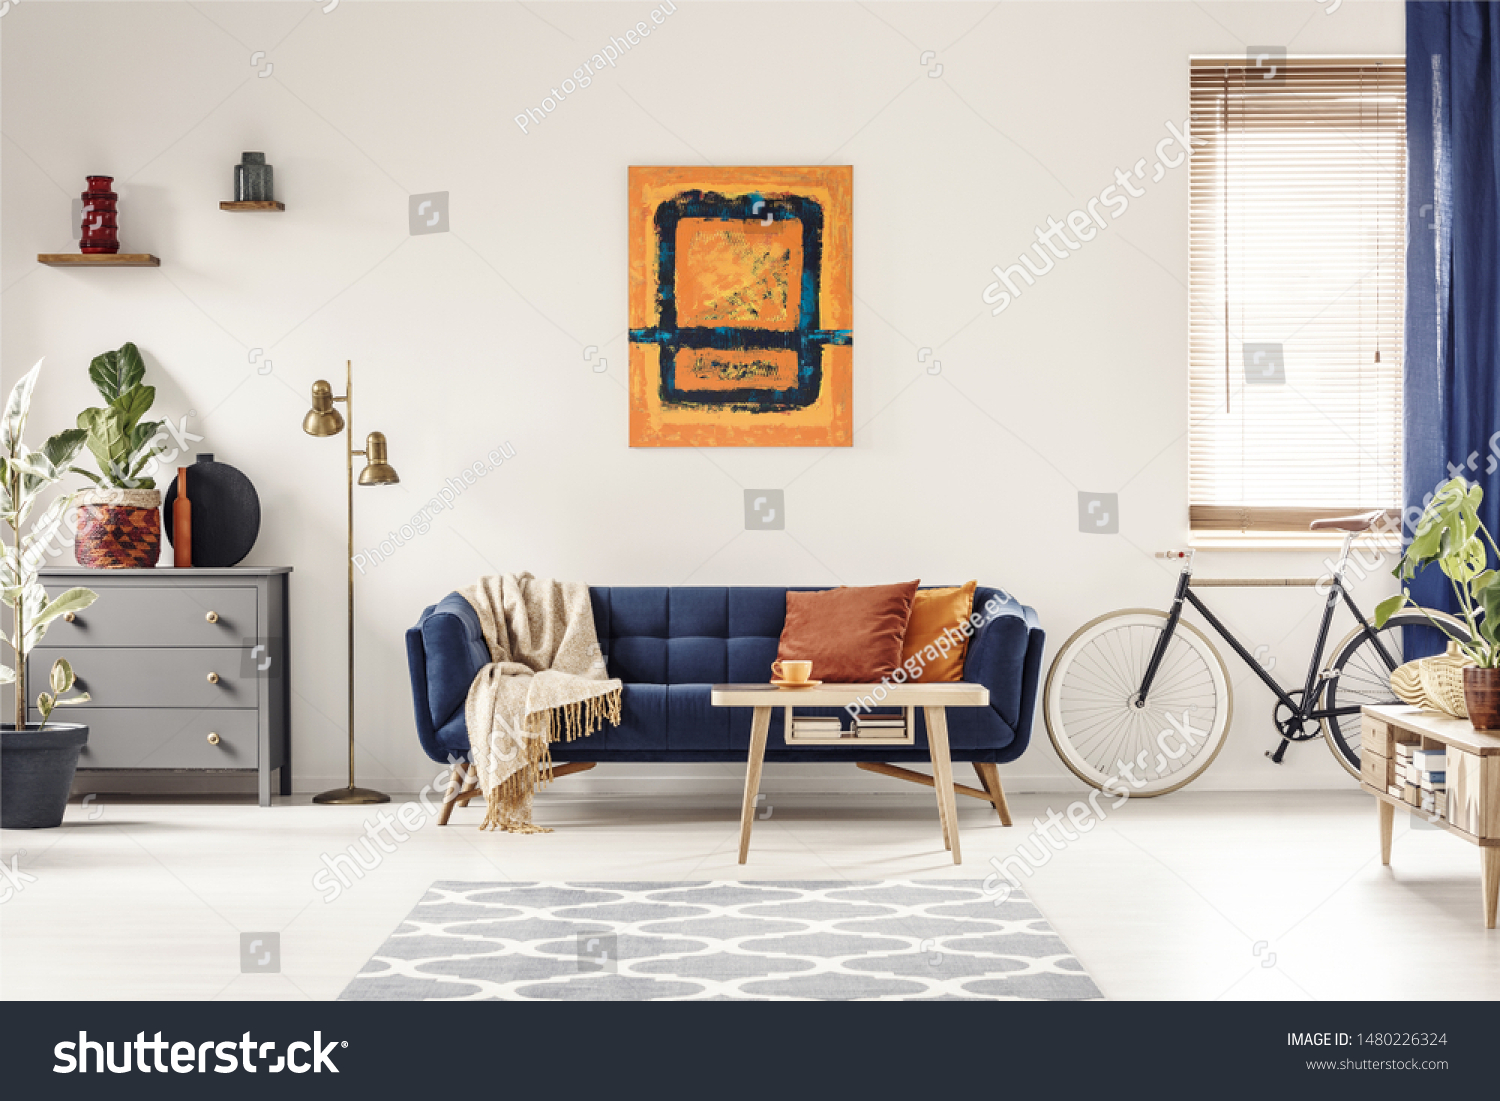 Yellow and blue painting hanging on white wall in bright living room interior with grey cupboard, gold lamp, sofa with blanket and pillows, and bike standing under window with blinds #1480226324